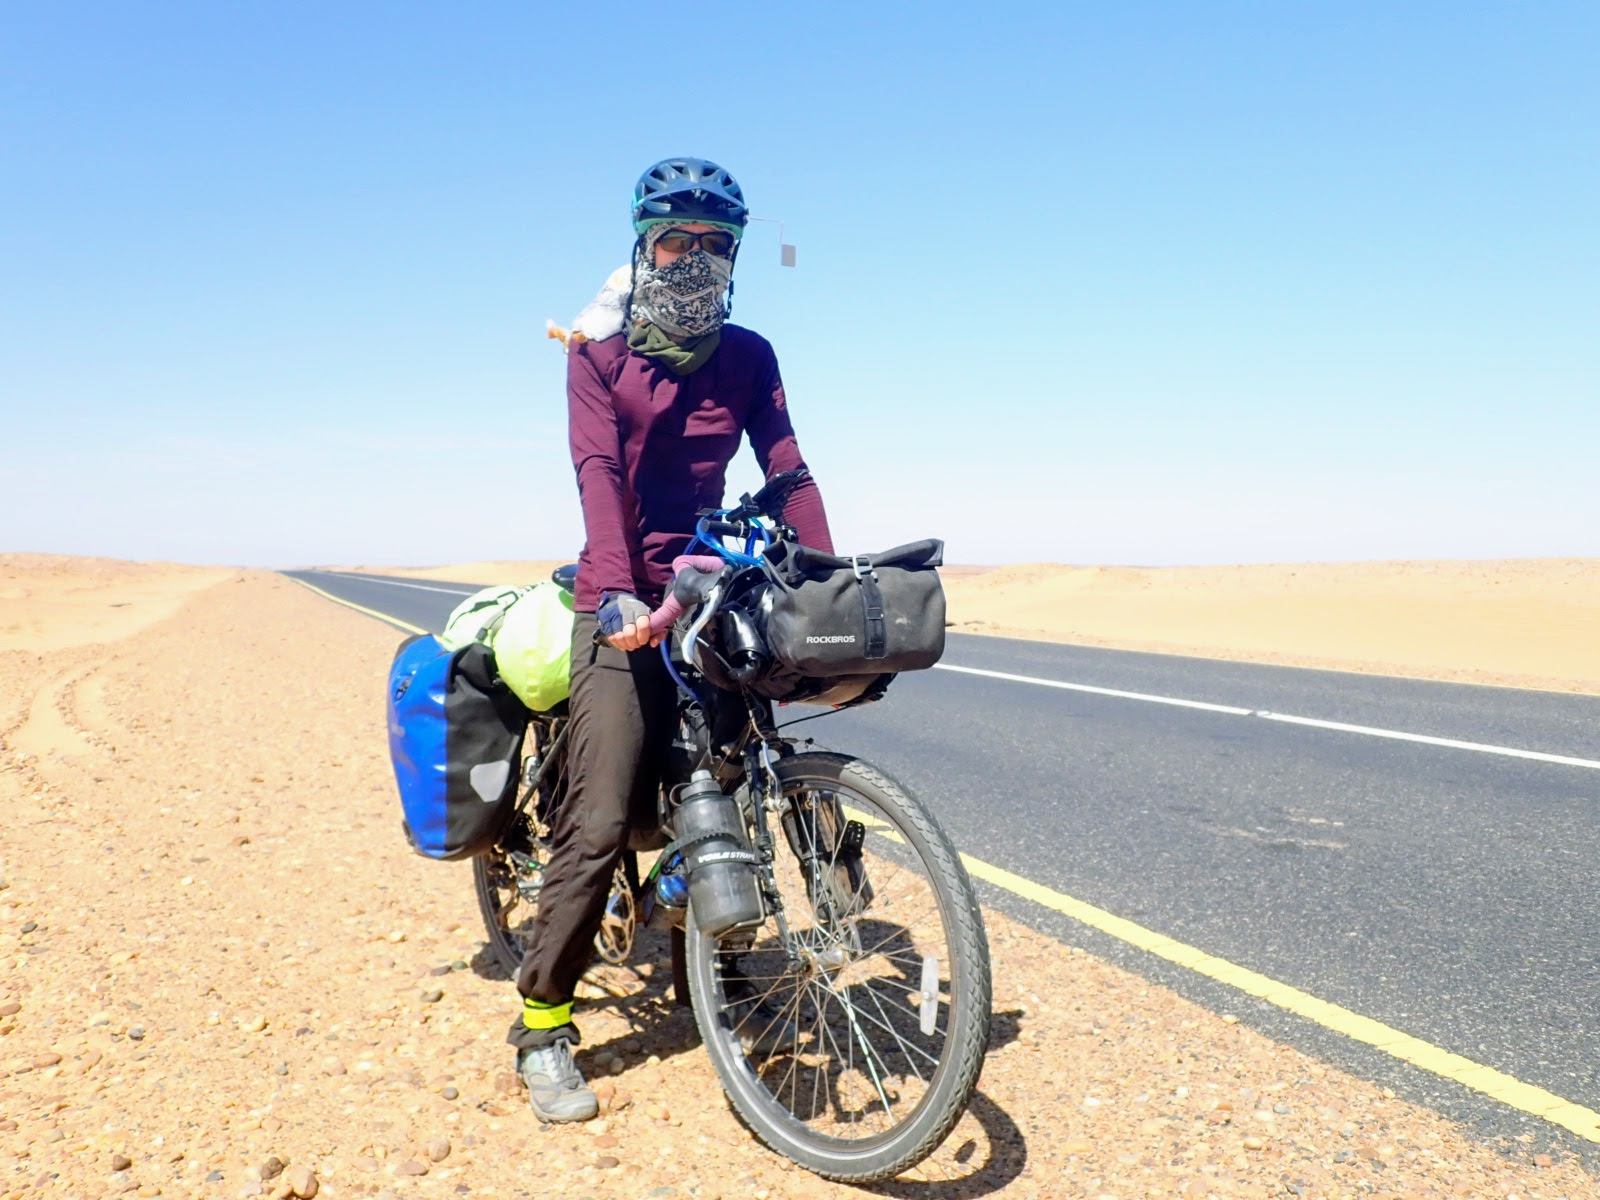 Cycling solo as a woman in Sudan